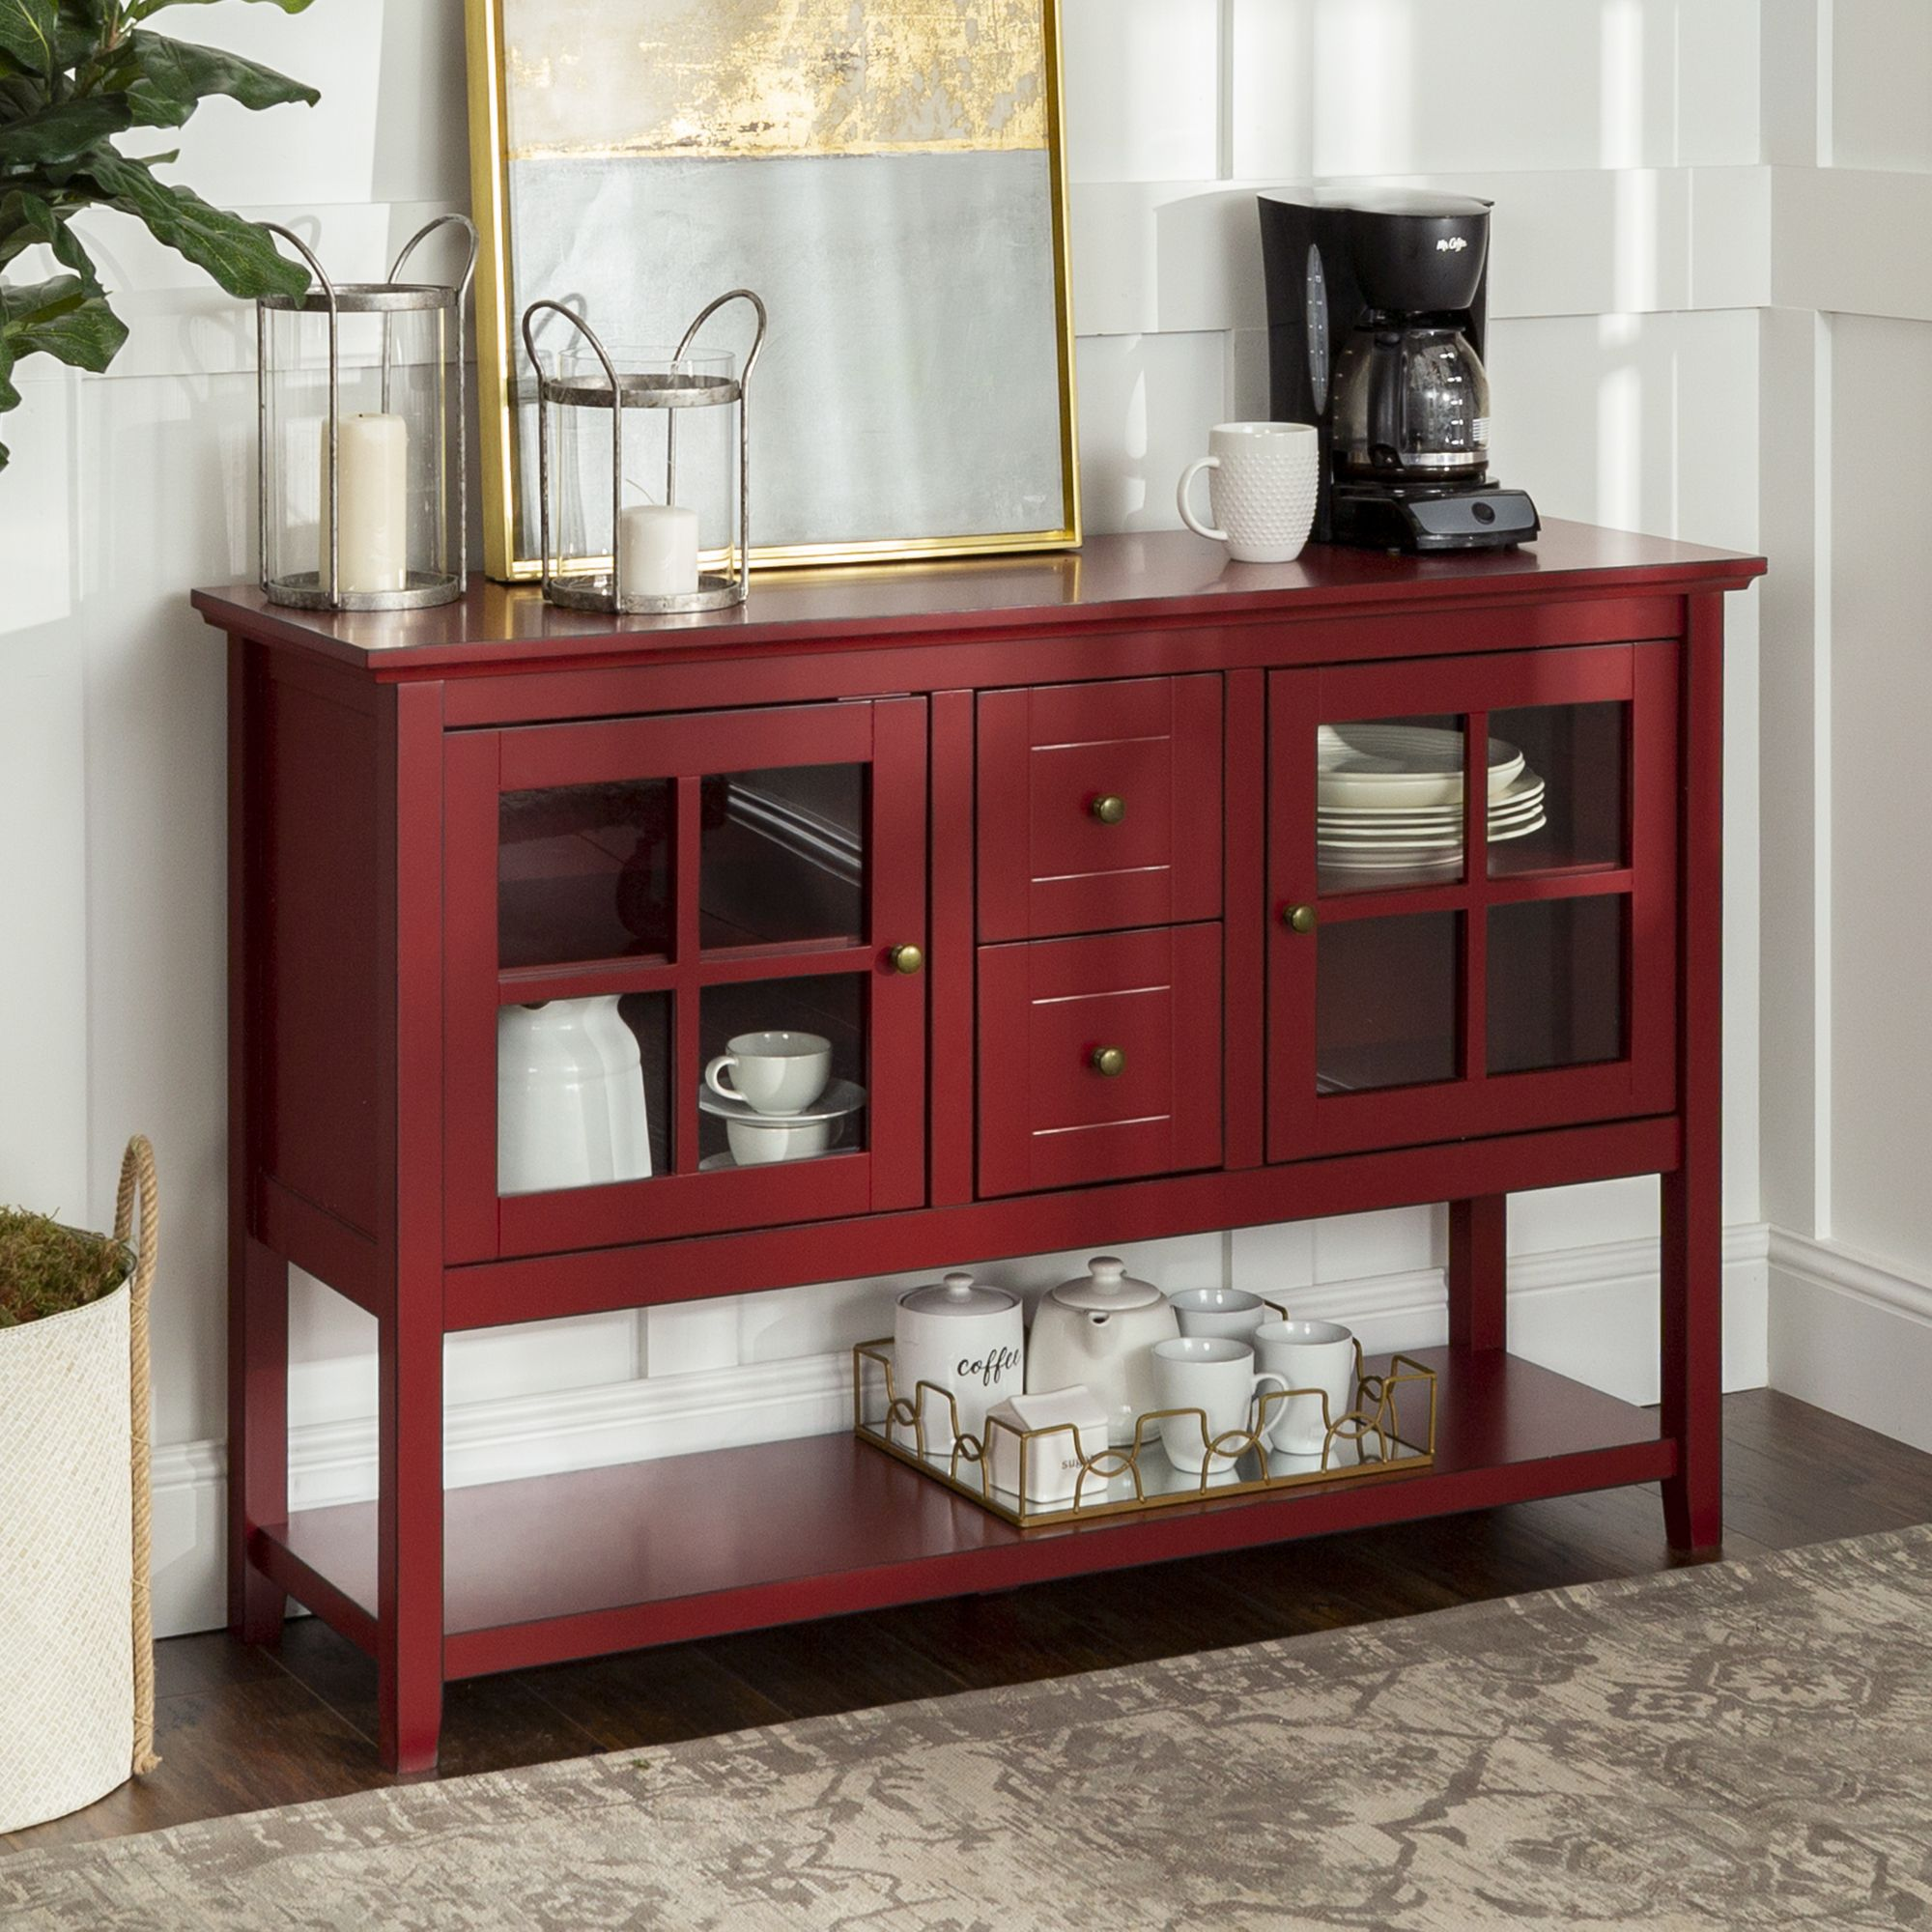 Home Farmhouse buffet, Tv stand with drawers, Glass